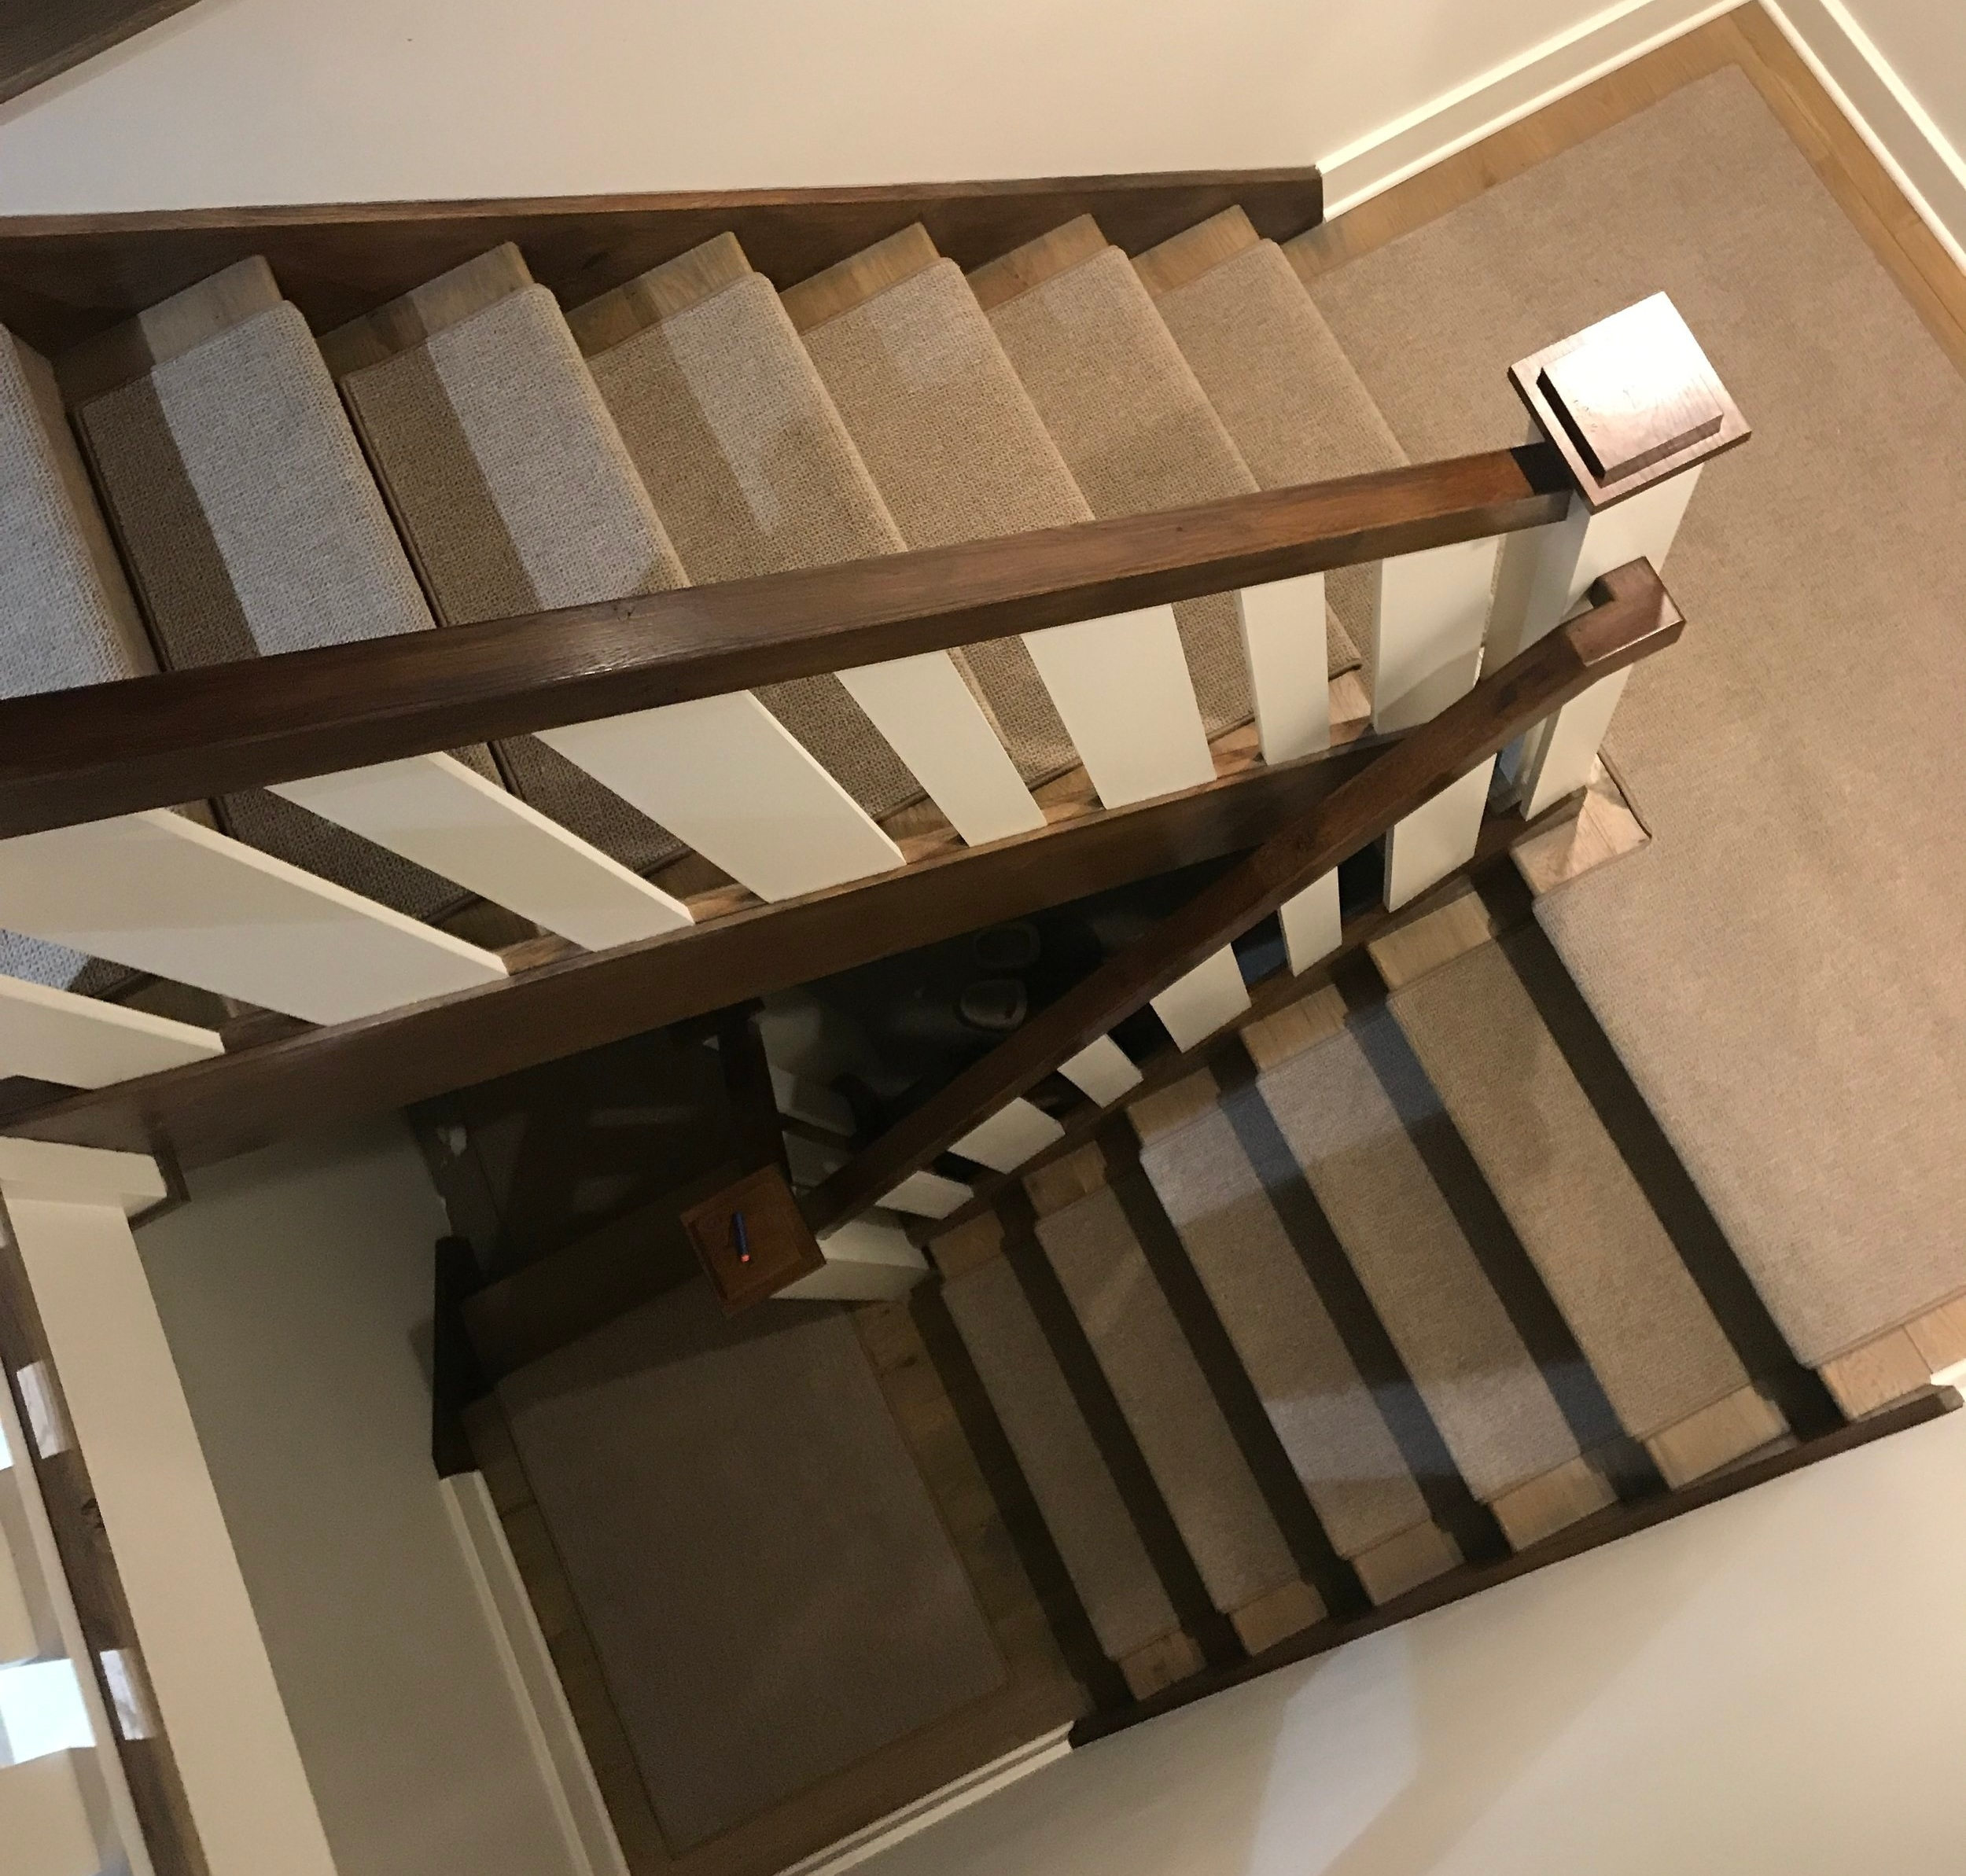 Indoor Carpet Stair Treads Oak Valley Designs   Carpet Runners For Stairs And Landing   Carpet Hampton Style   Hallway   Stair Runner Matching Landing   Fitted   Farmhouse